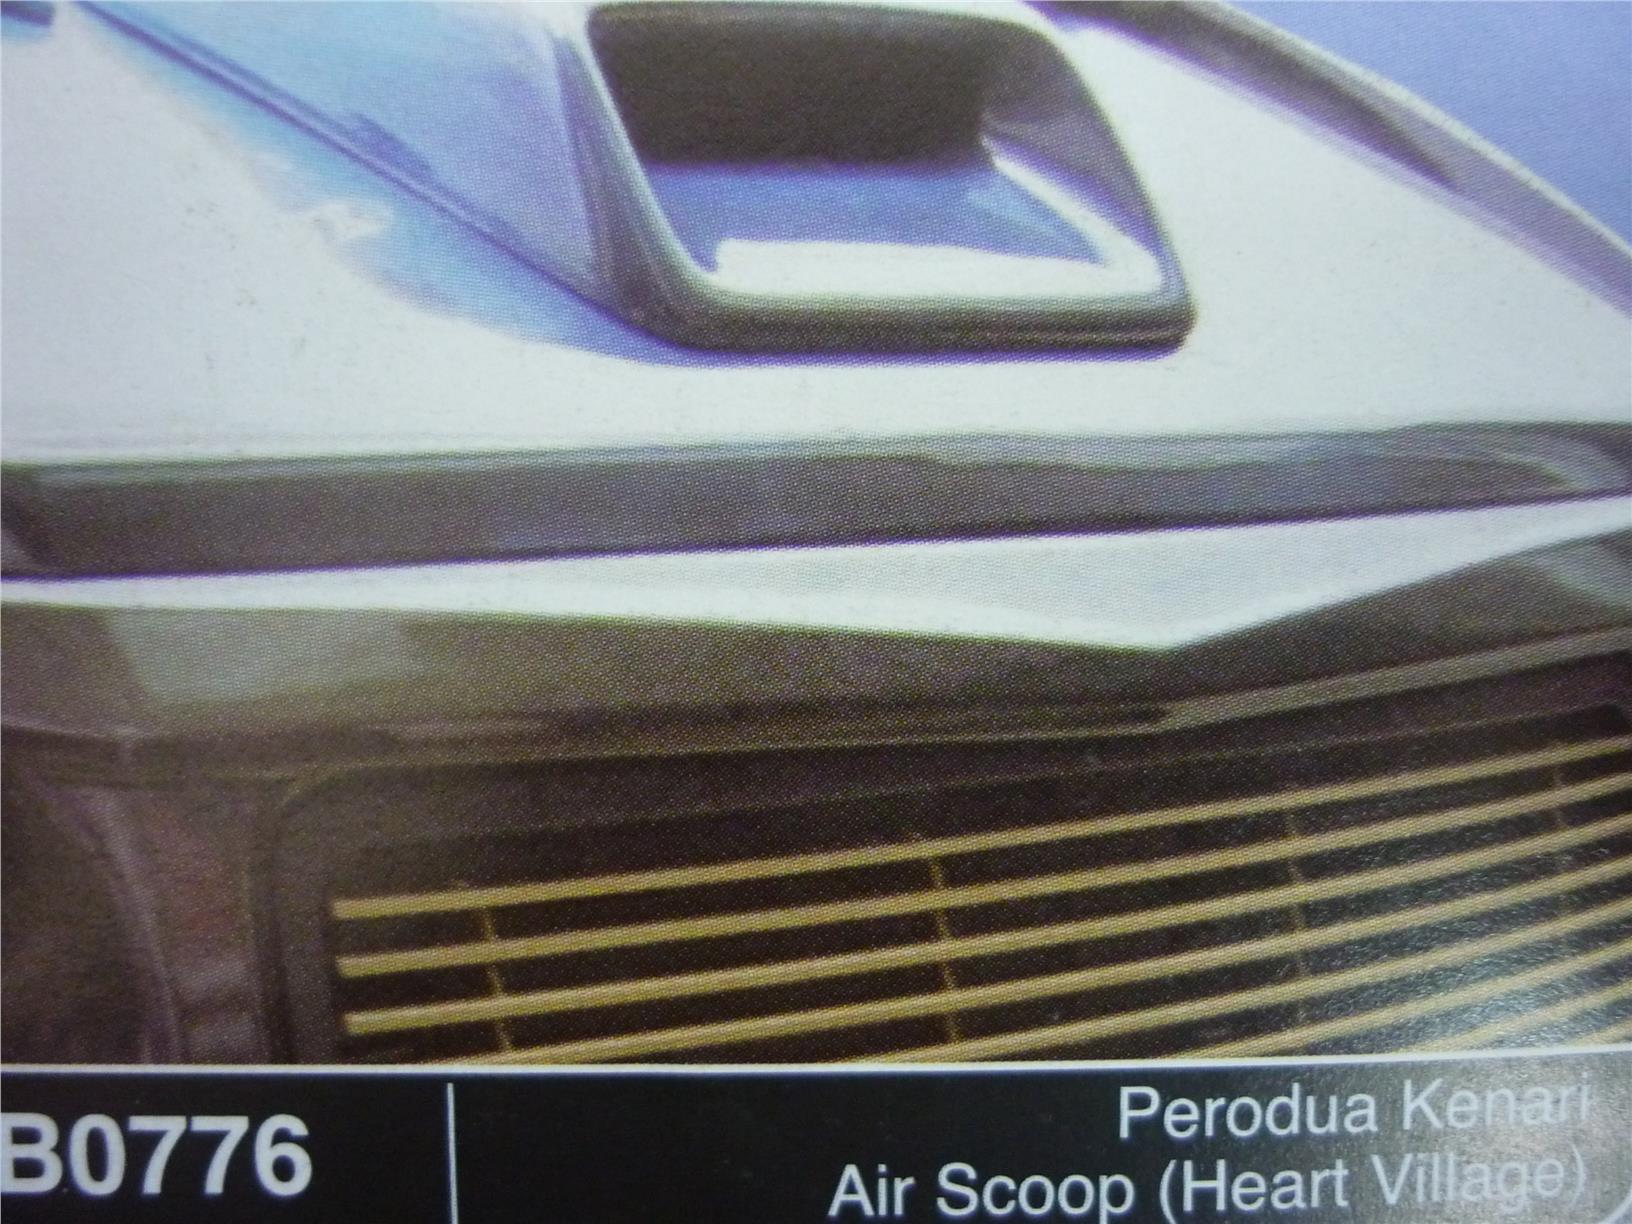 PERODUA KENARI AIR SCOOP HEART VILLAGE B0776